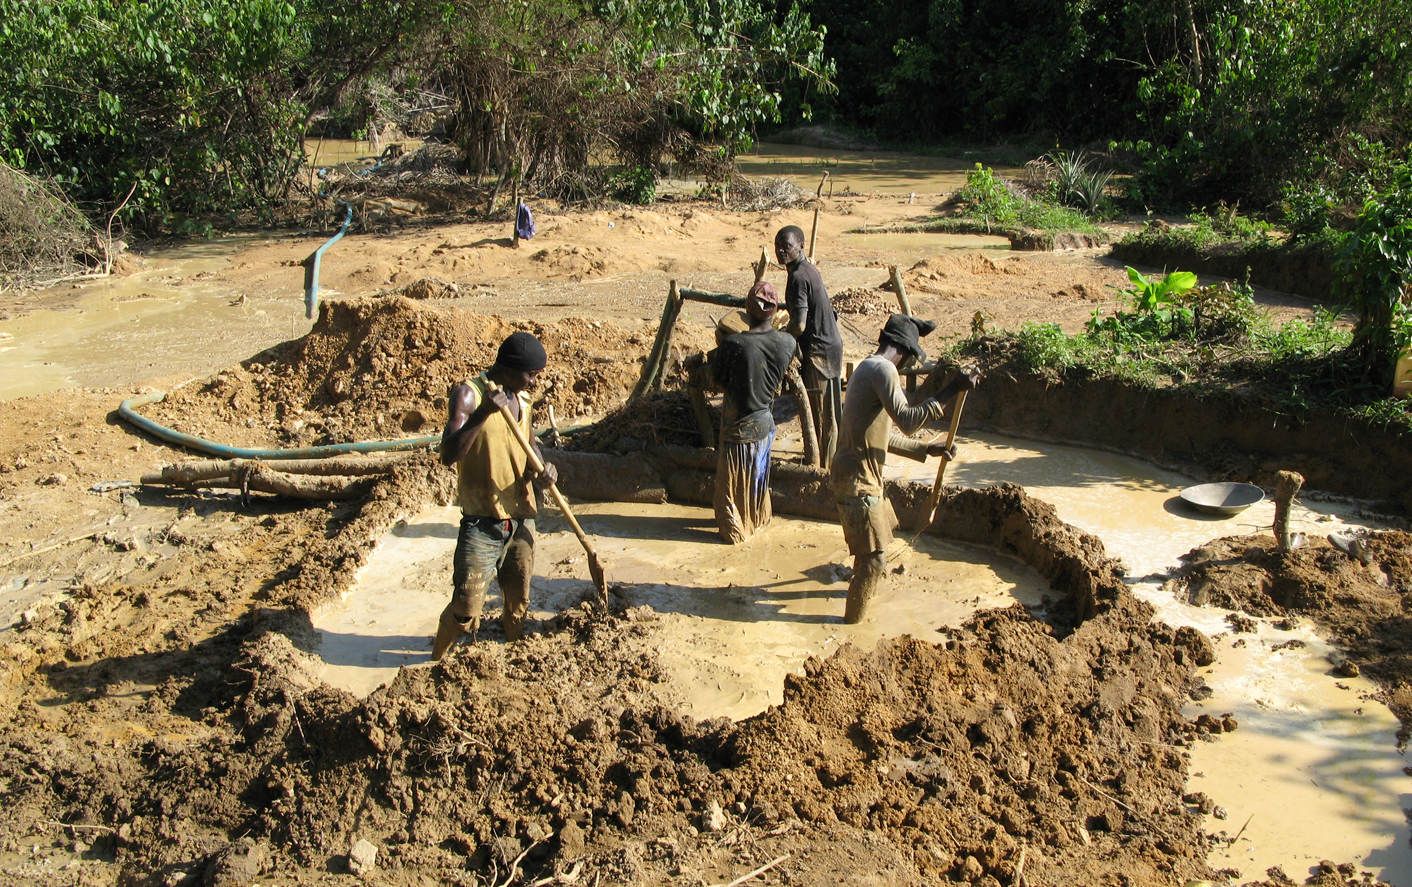 Special report: Illegal gold mining in Liberia